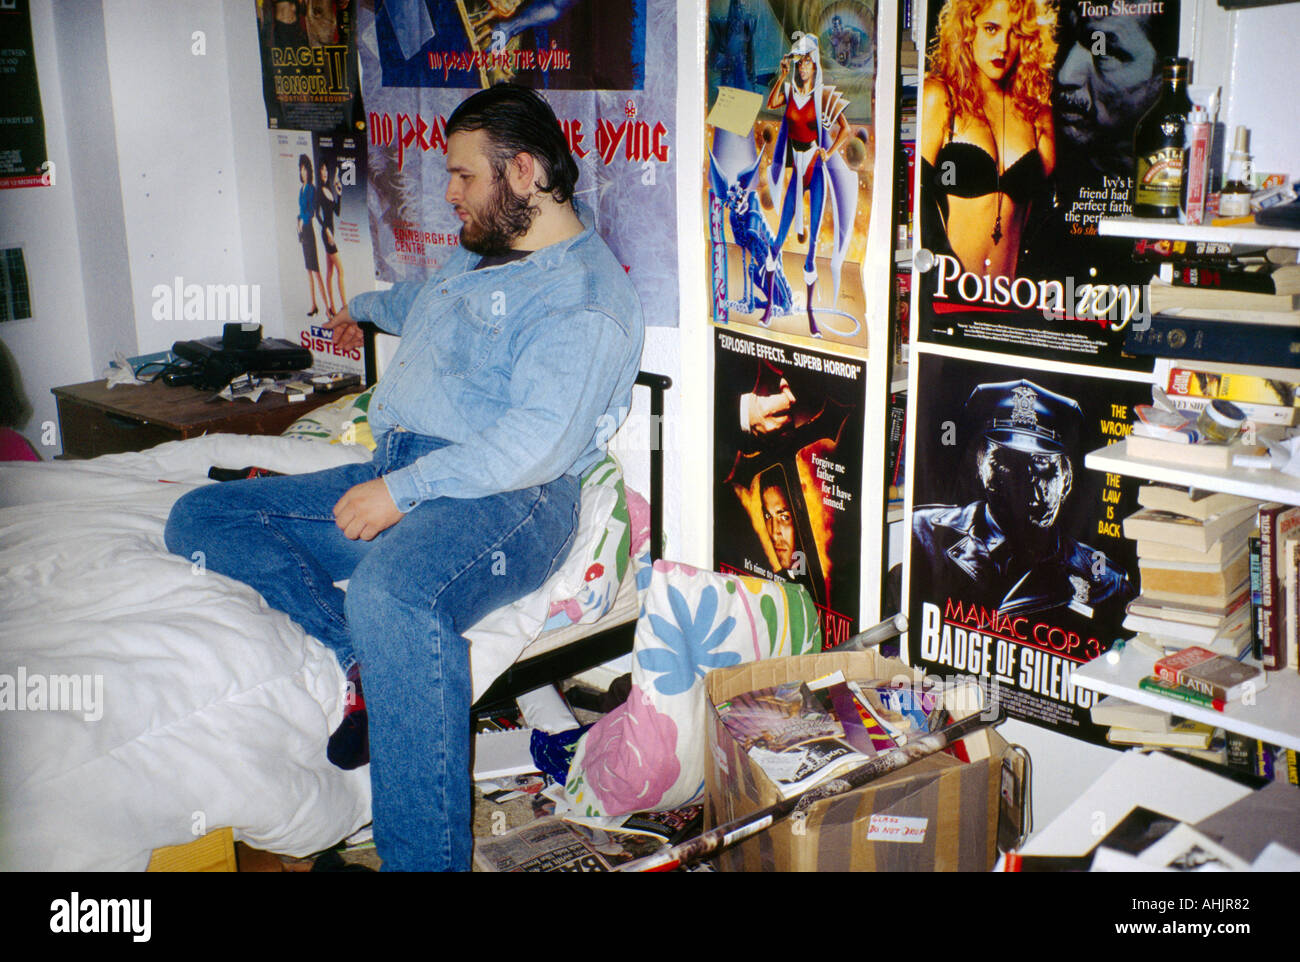 Teenager In Bedroom With Posters On Wall England Stock Photo